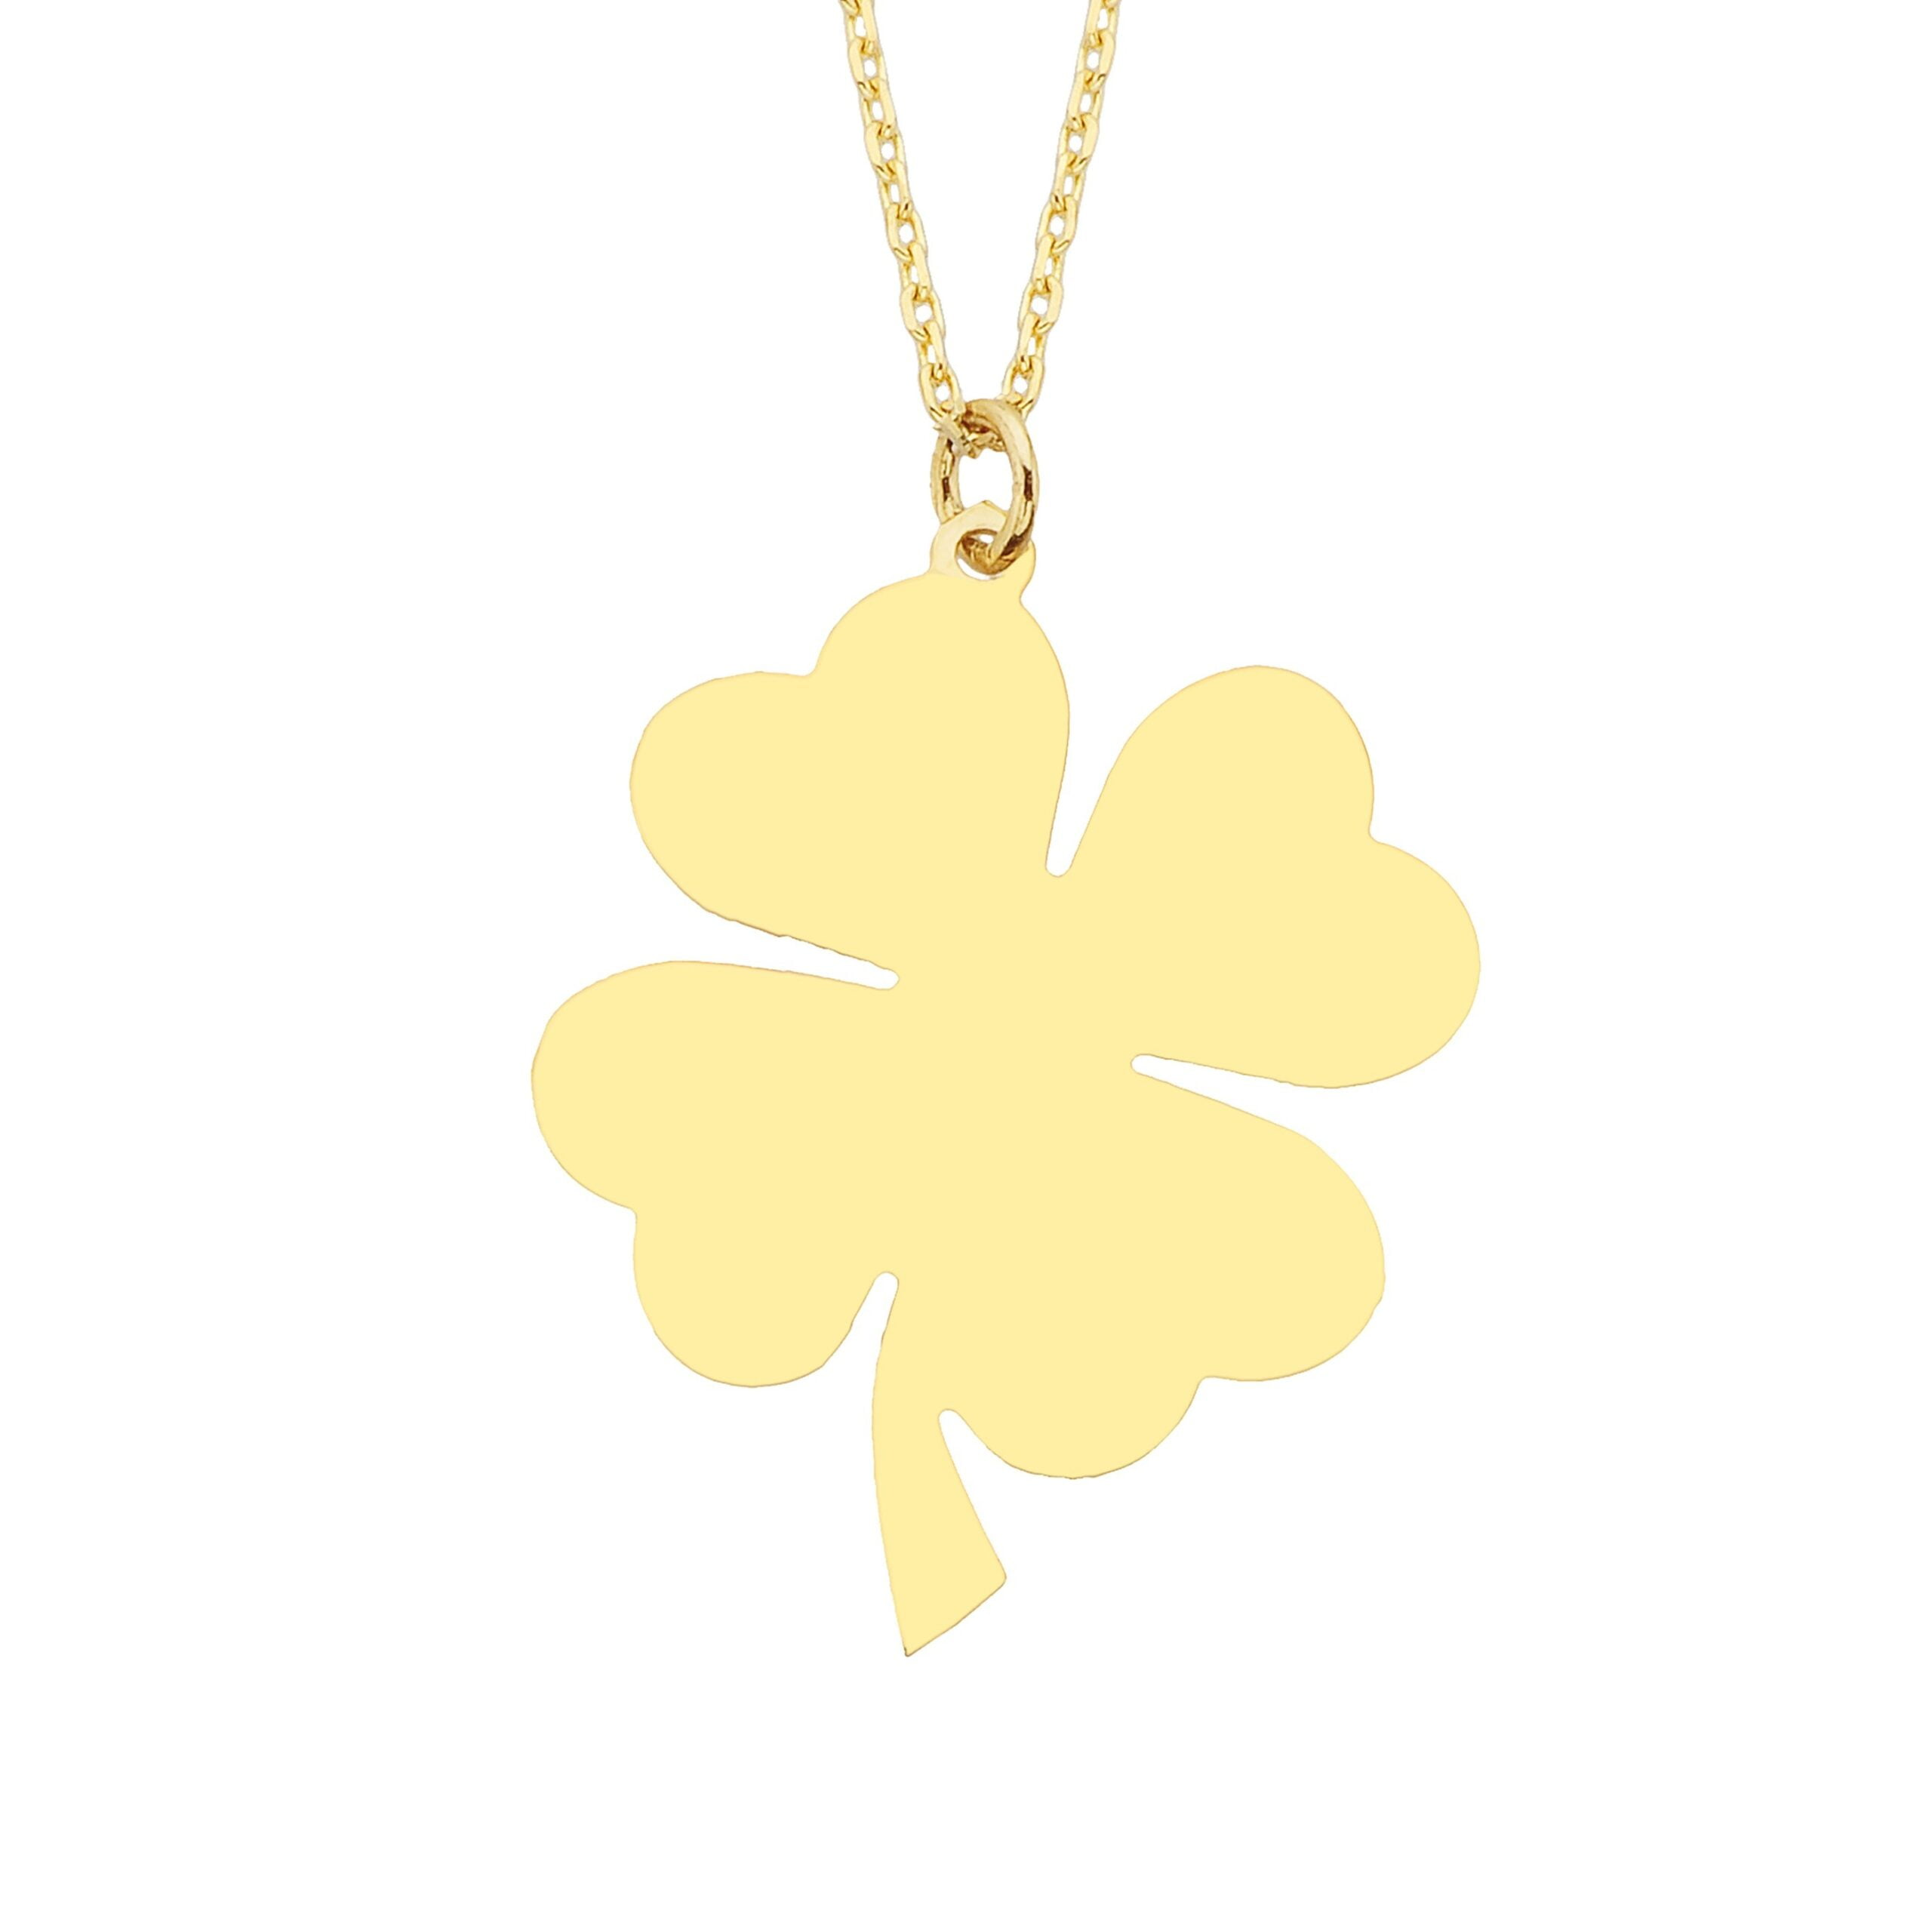 14K Real Solid Gold Elegant Four Leaf Clover Charm Dainty Trendy Pendant Necklace for Good Luck Best Birthday Gift for Lucky Women Christmas Birthday Gift Mother's Day.